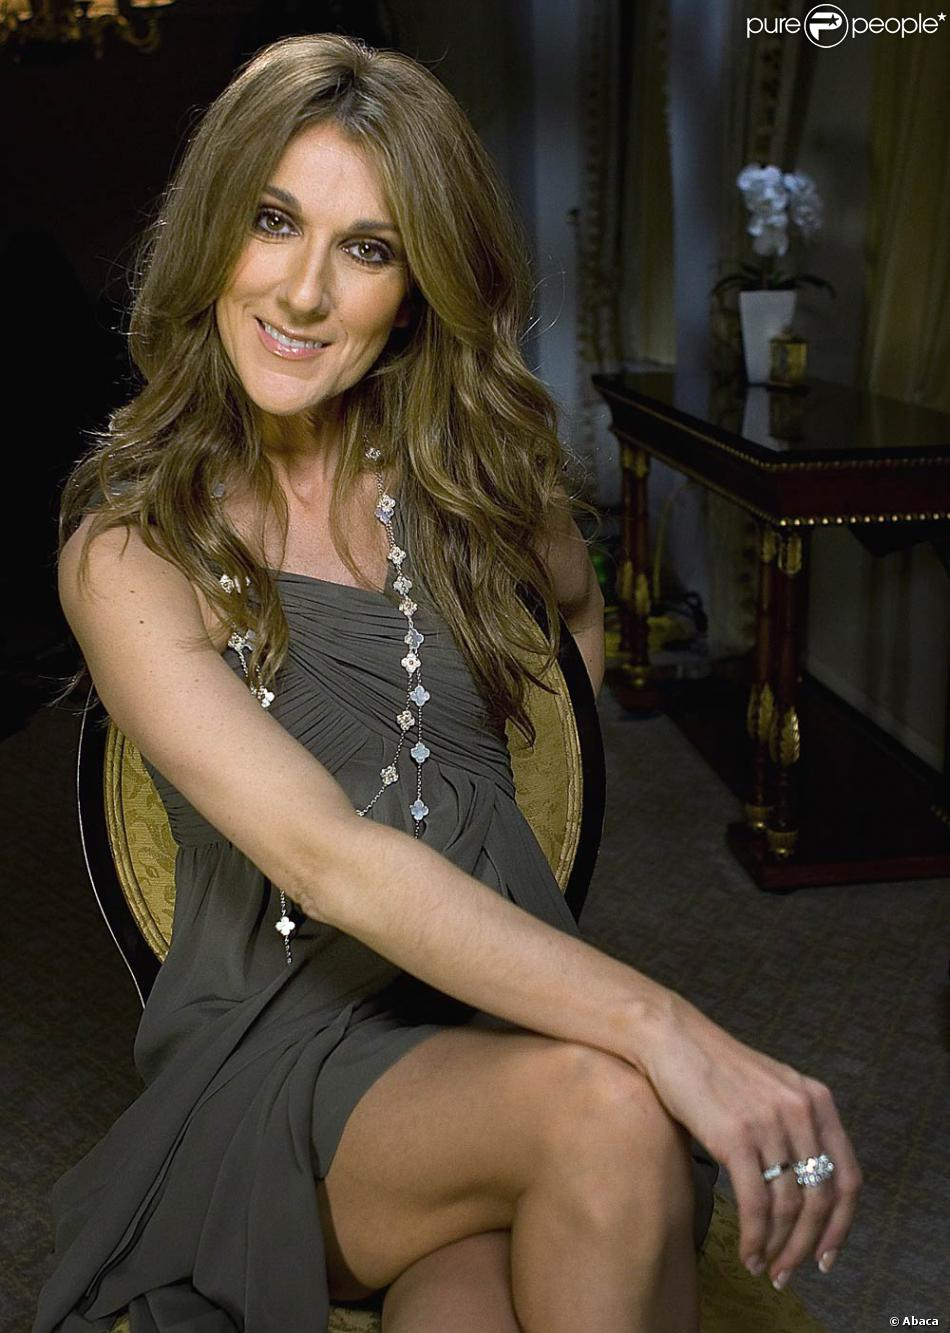 Cline dion dsire adopter une petite fille petite fille and celine dion - Peur de faire une fausse couche ...